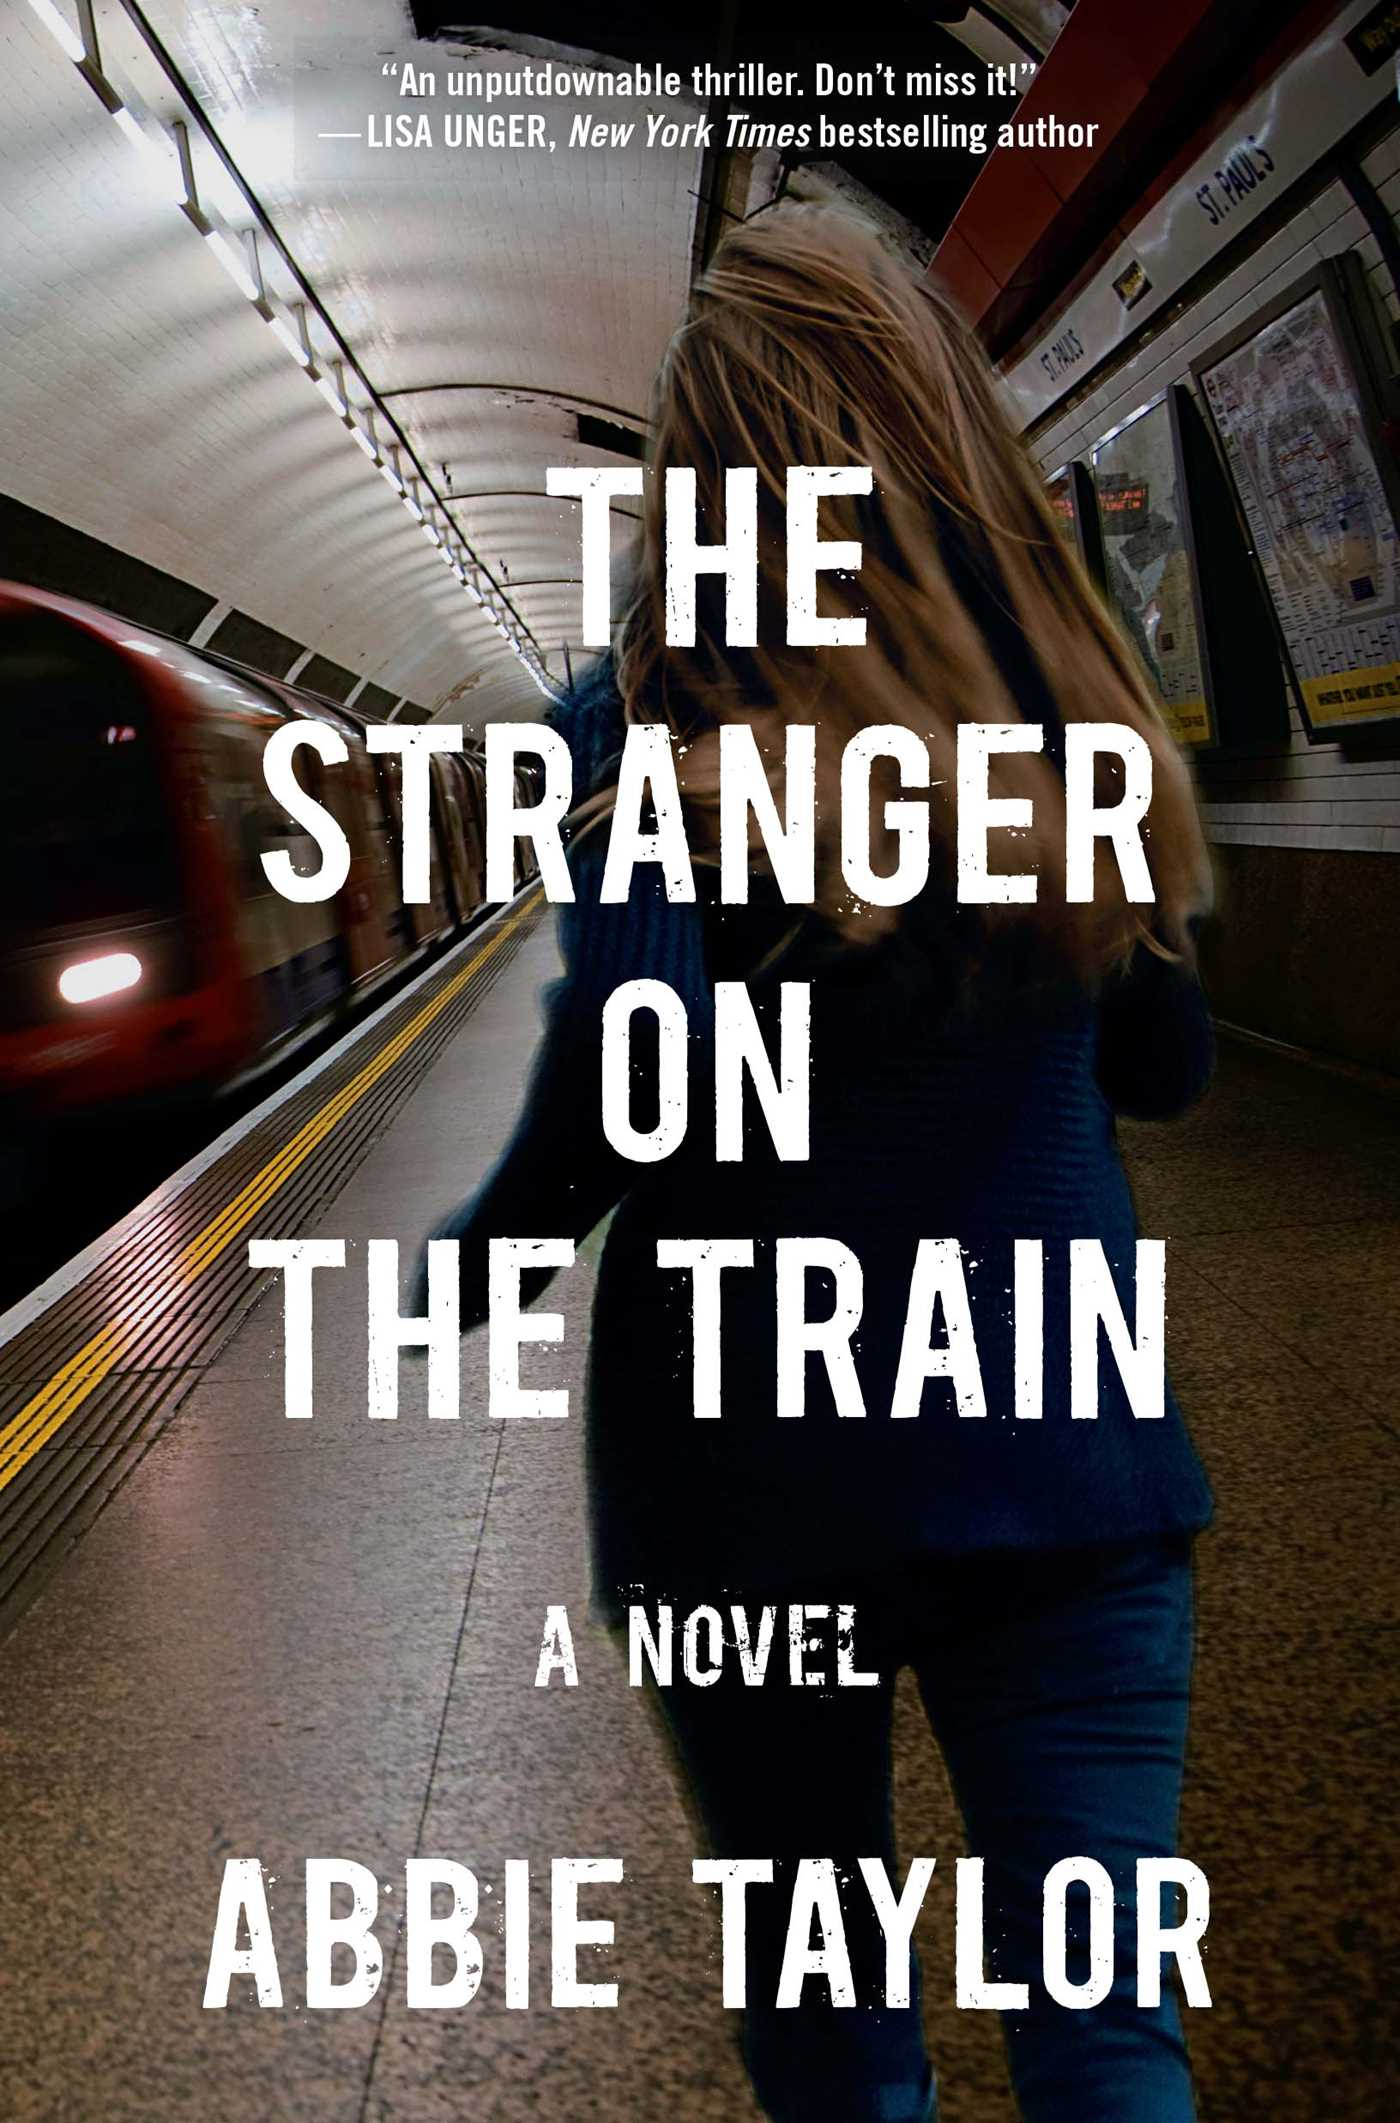 The-stranger-on-the-train-9781476754970_hr